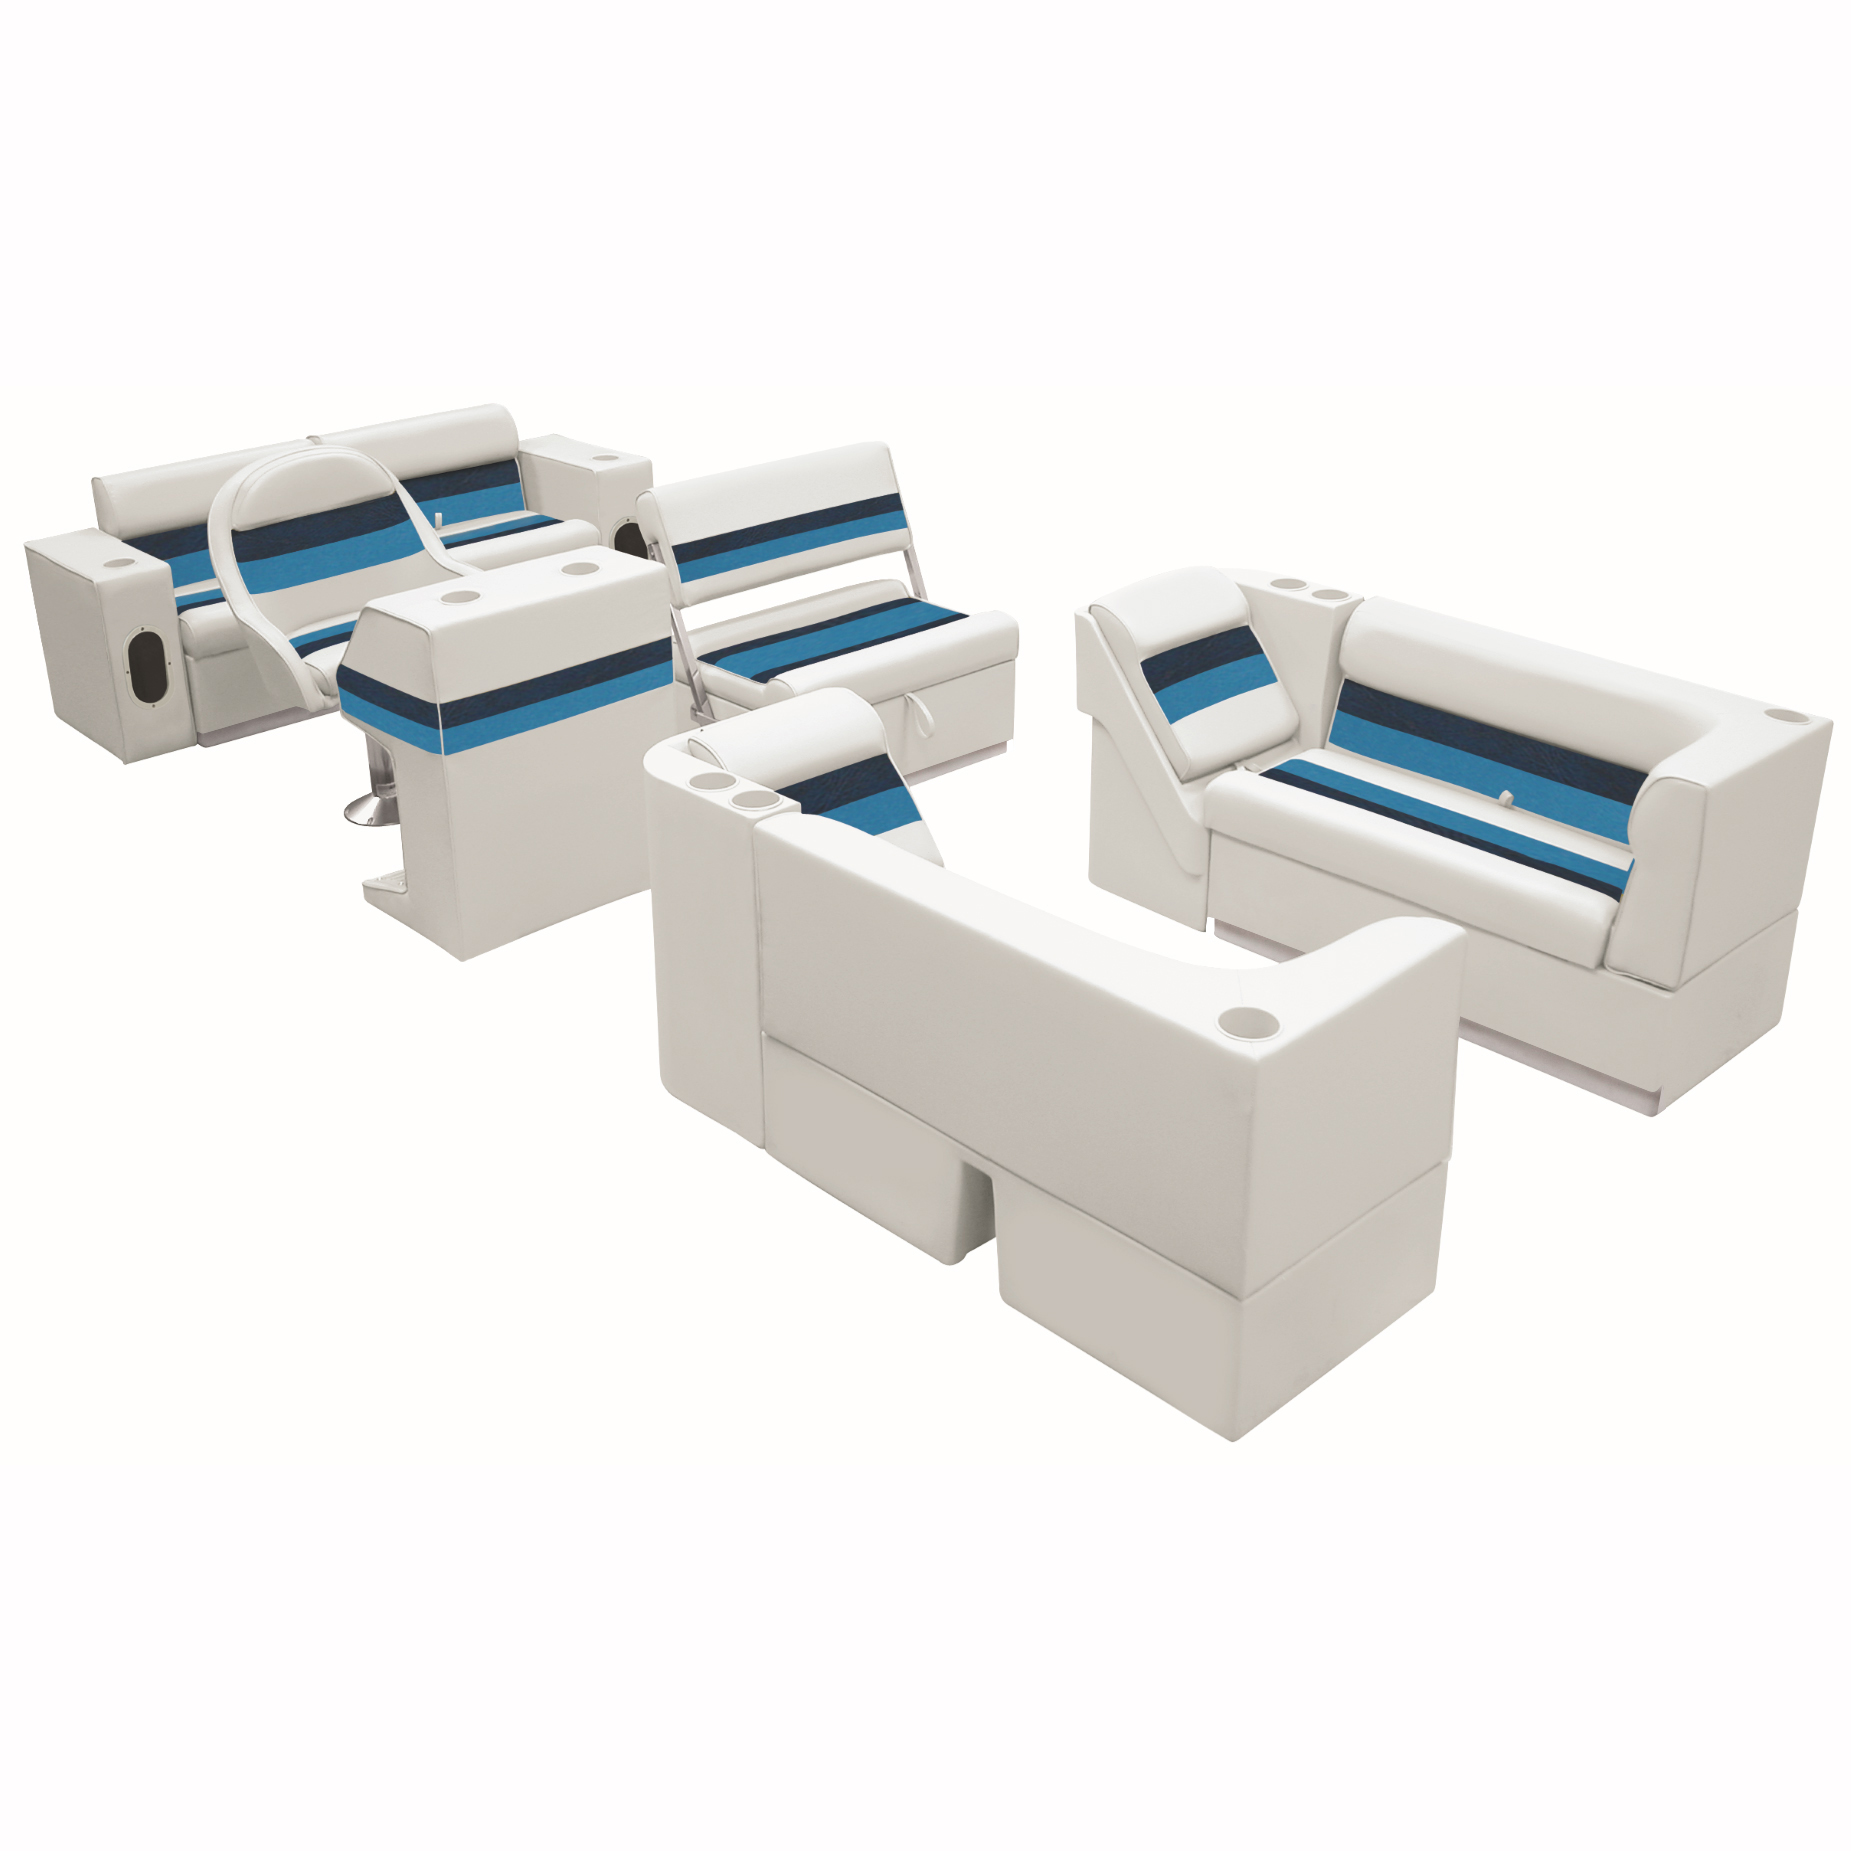 Deluxe Pontoon Furniture w/Toe Kick Base, Complete Package E, White/Navy/Blue